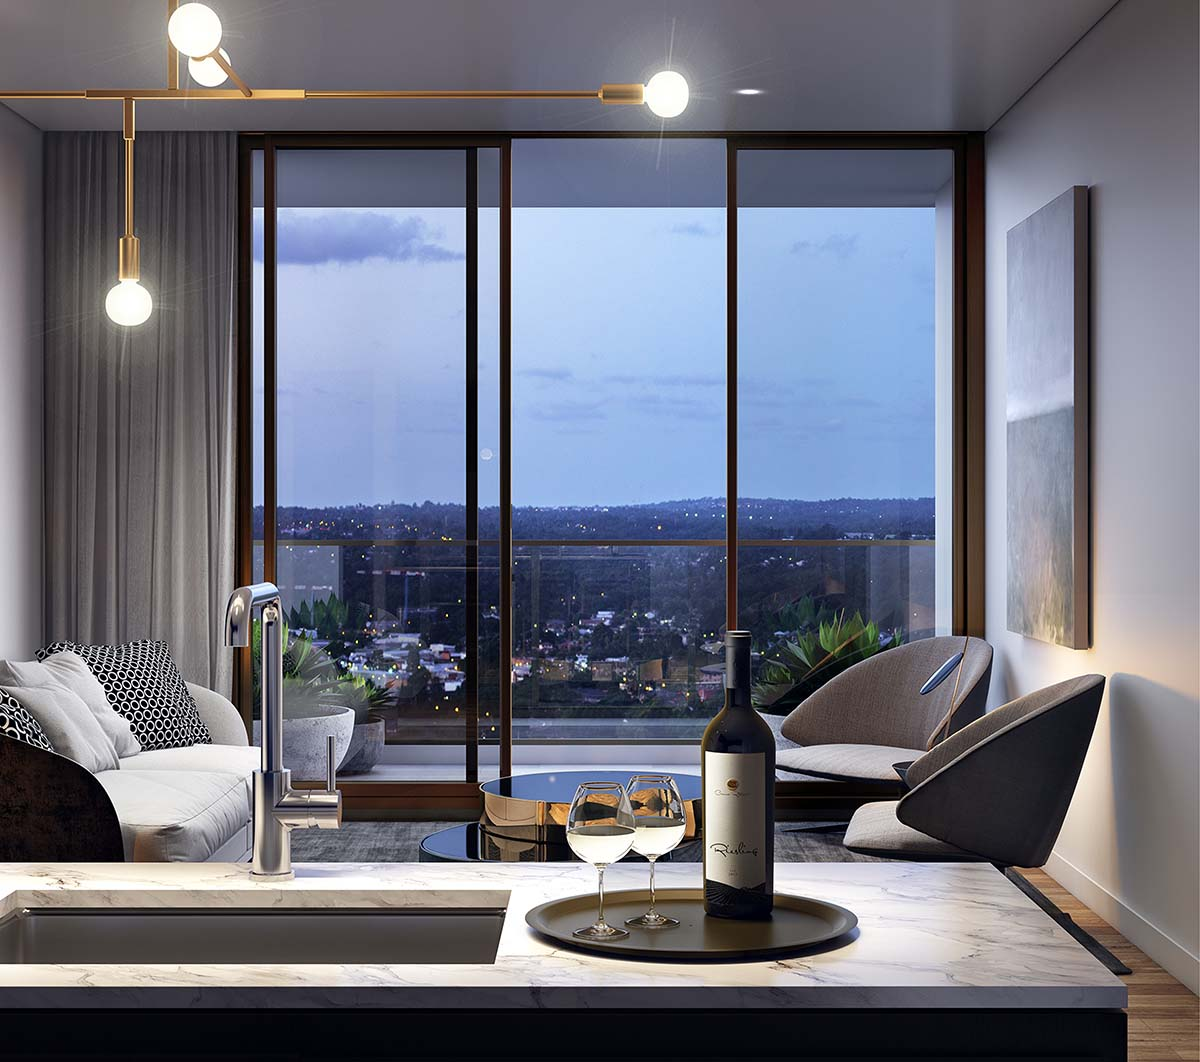 kitchen and living area with city view from balcony